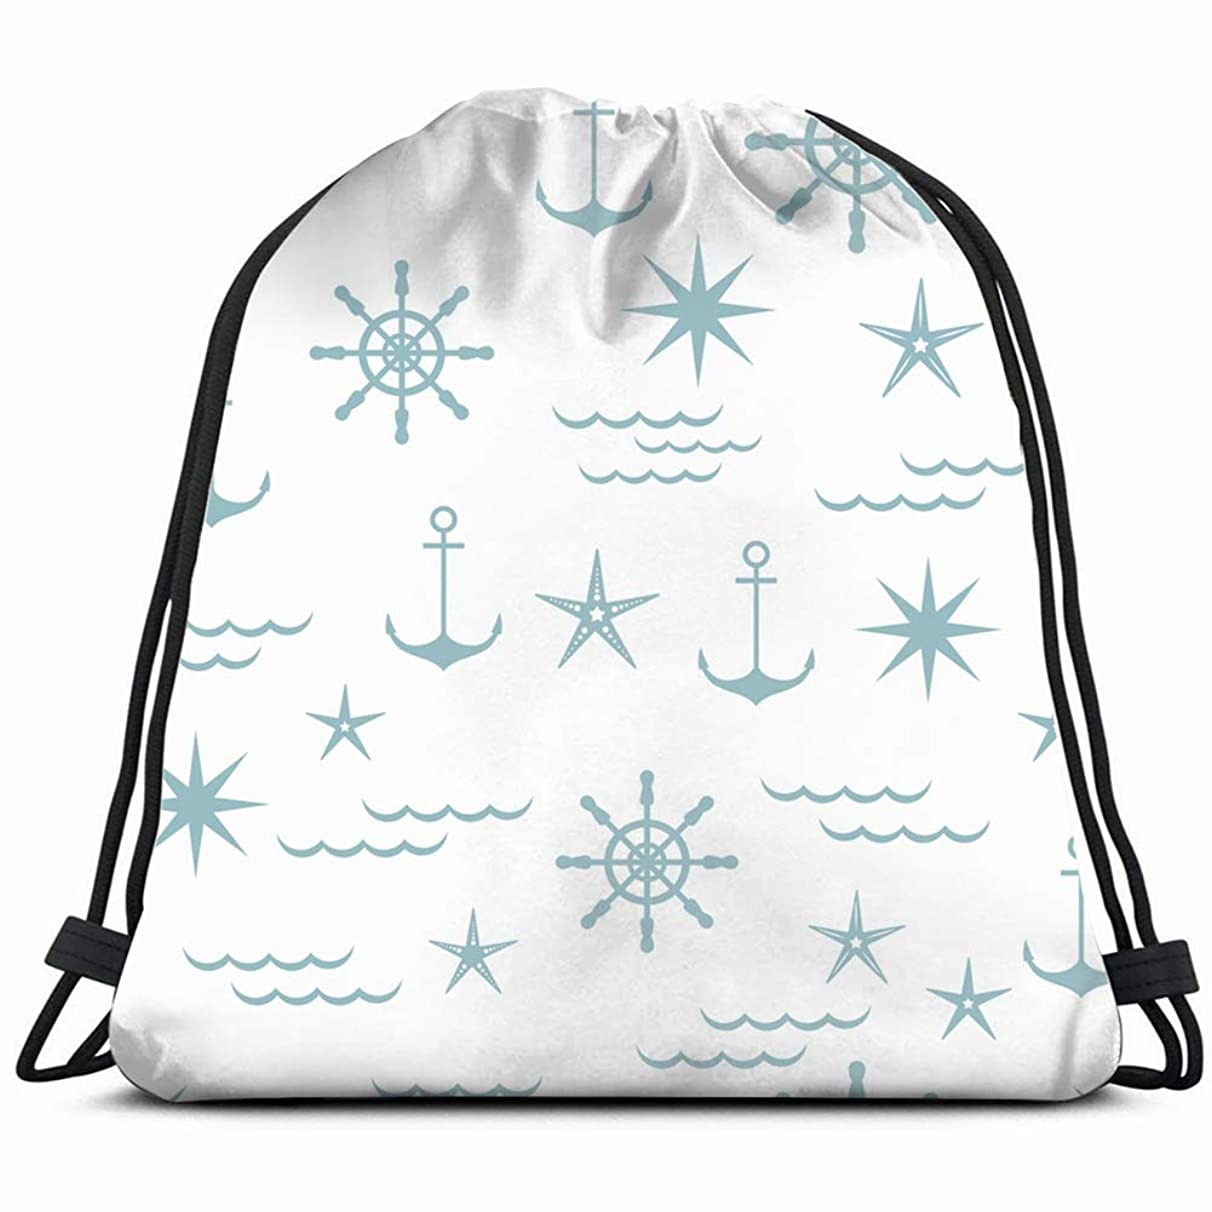 nautical shades blue Drawstring Backpack Gym Sack Lightweight Bag Water Resistant Gym Backpack for Women&Men for Sports,Travelling,Hiking,Camping,Shopping Yoga